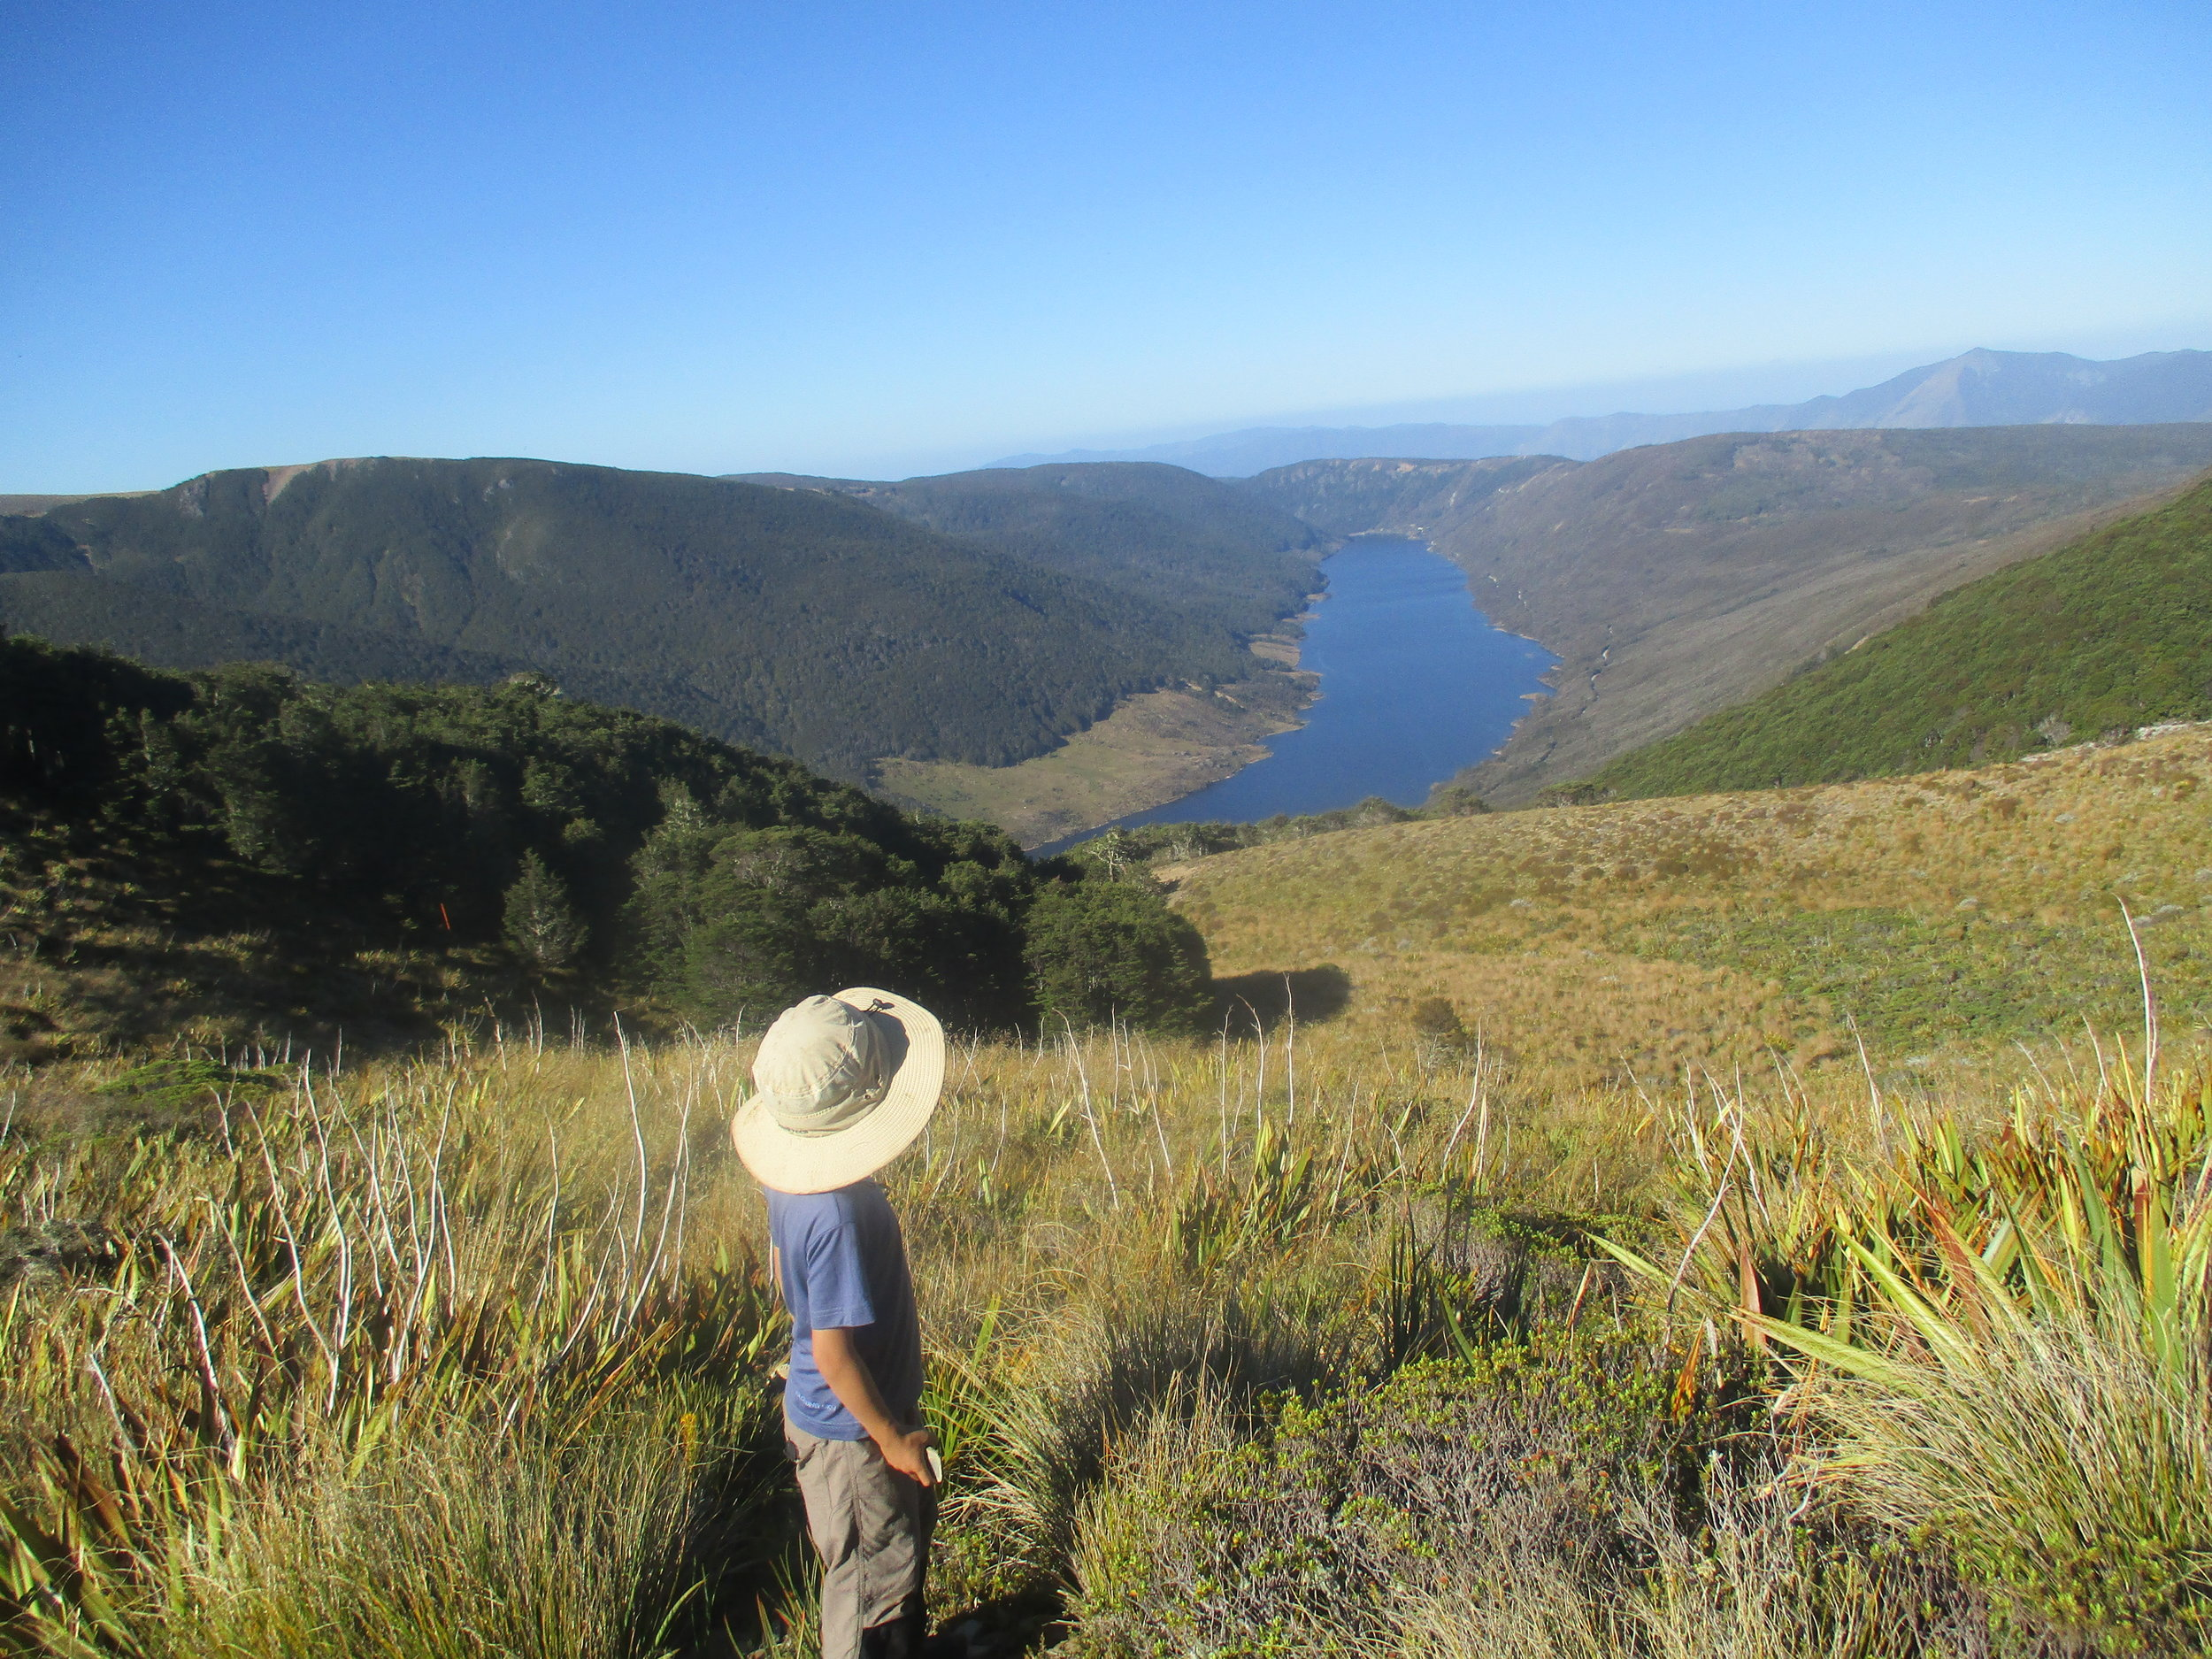 After spending the whole school holidays waiting for a break in the weather I finally got Isabelle and Leo up to Lake Peel below Mount Peel on the the very last weekend before school. Here Leo looks out over the Cobb Resivor and into Golden Bay.